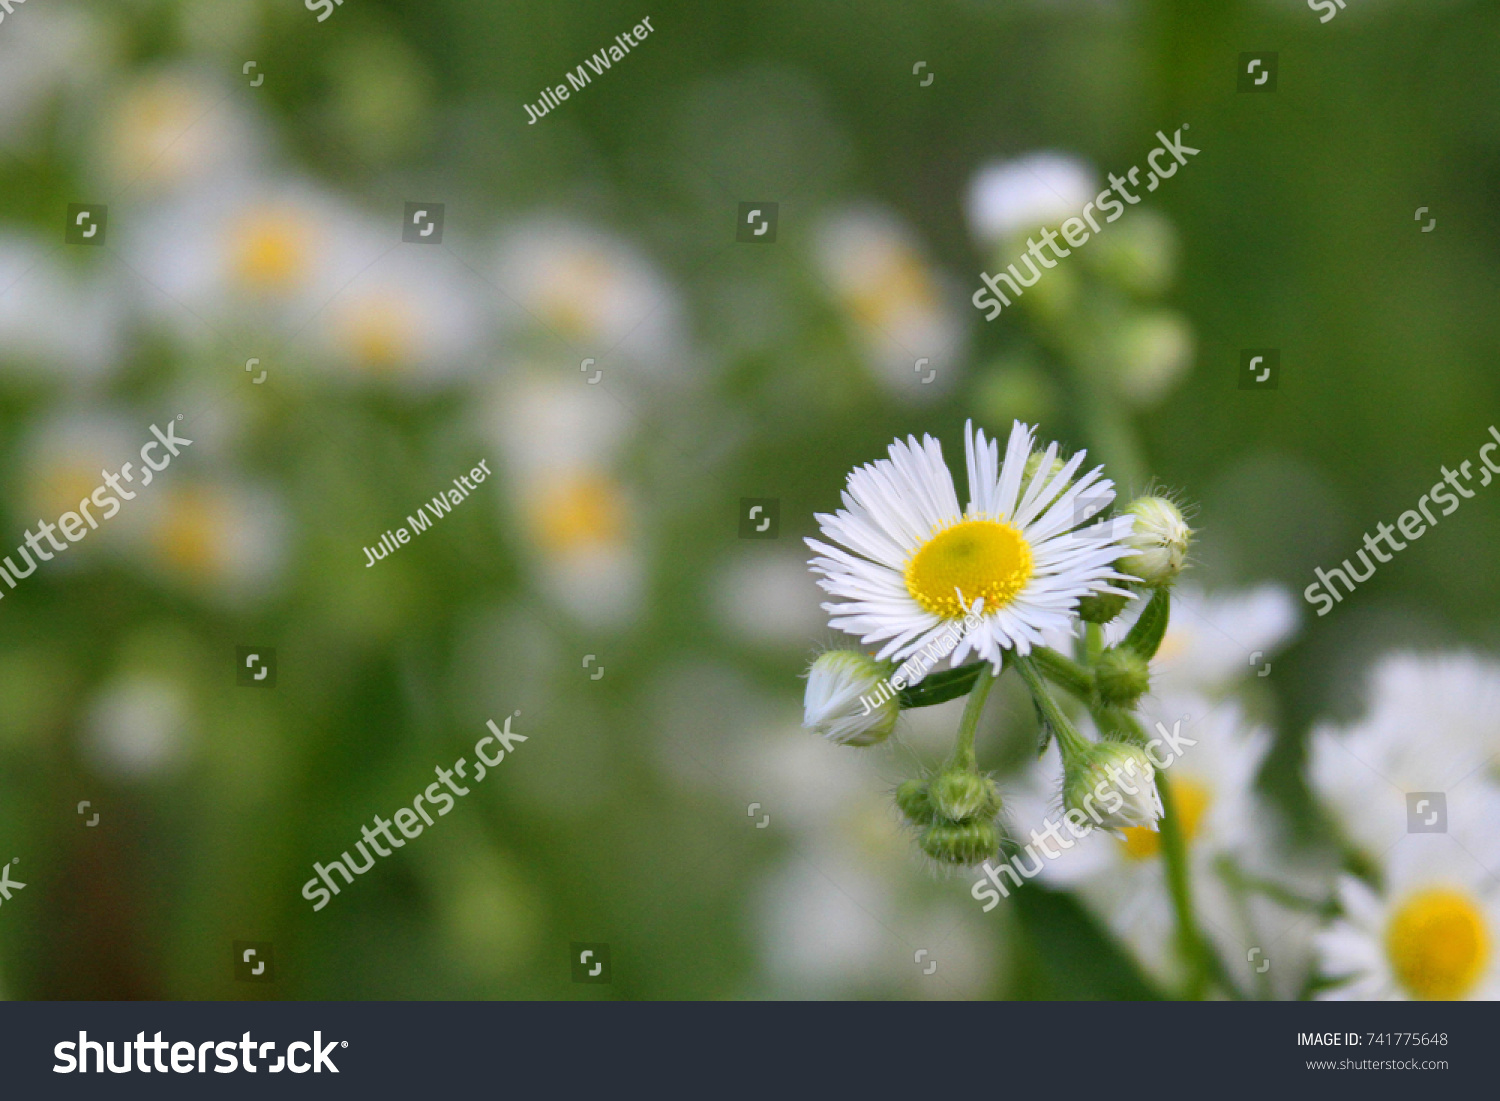 Eastern daisy fleabane white top herbaceous stock photo edit now eastern daisy fleabane white top is a herbaceous plant meaning exorcism protection and izmirmasajfo